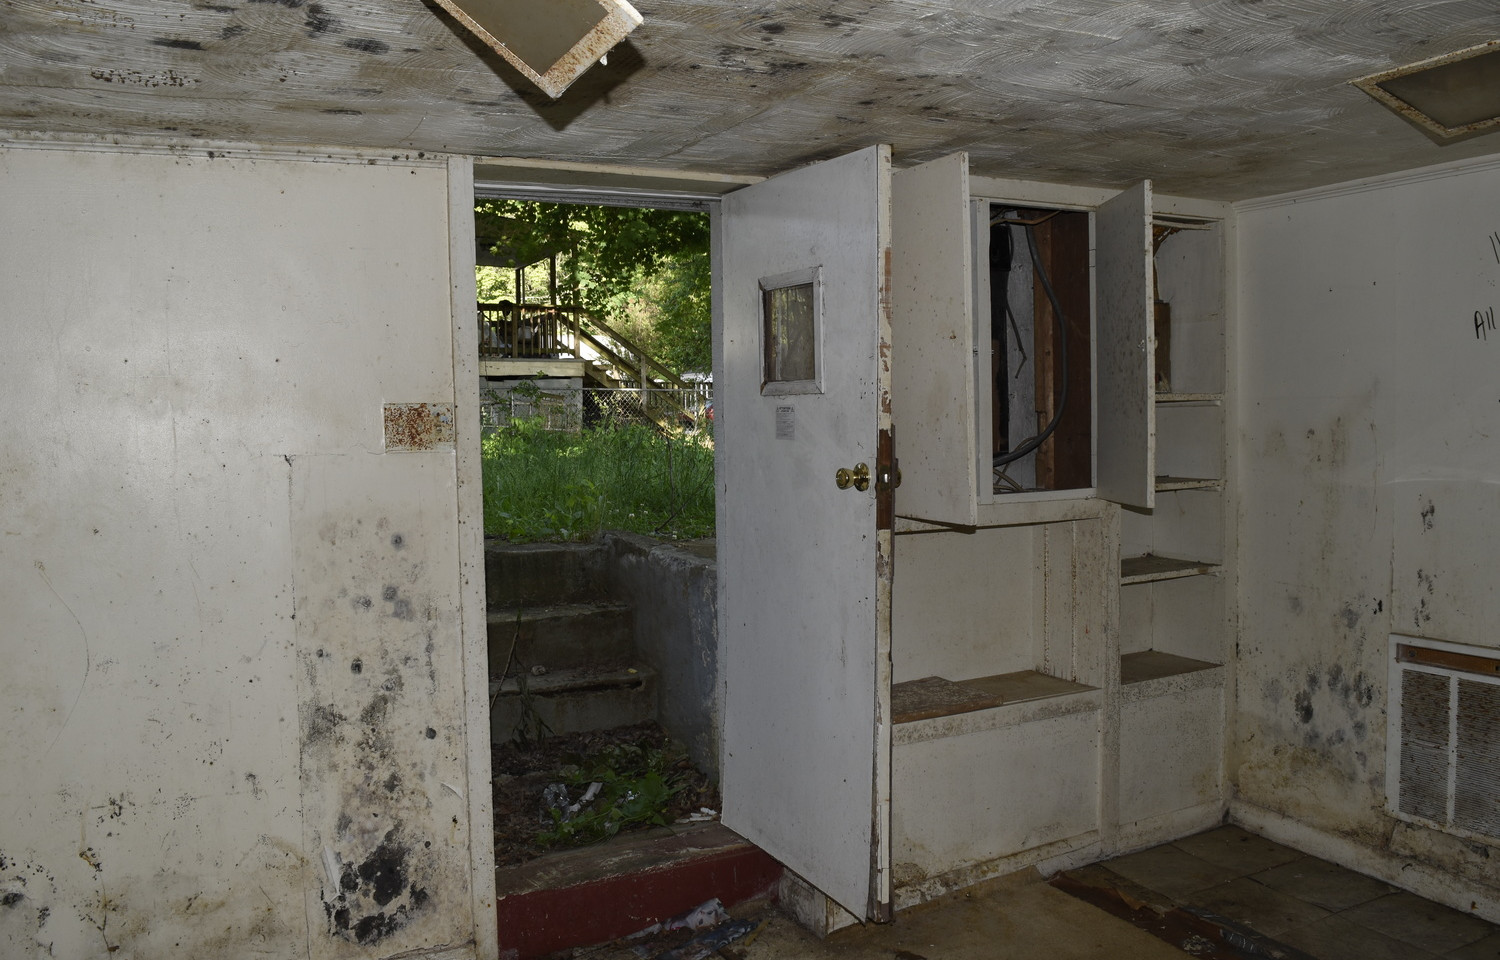 27.0 Basement Apartment Entry.jpg